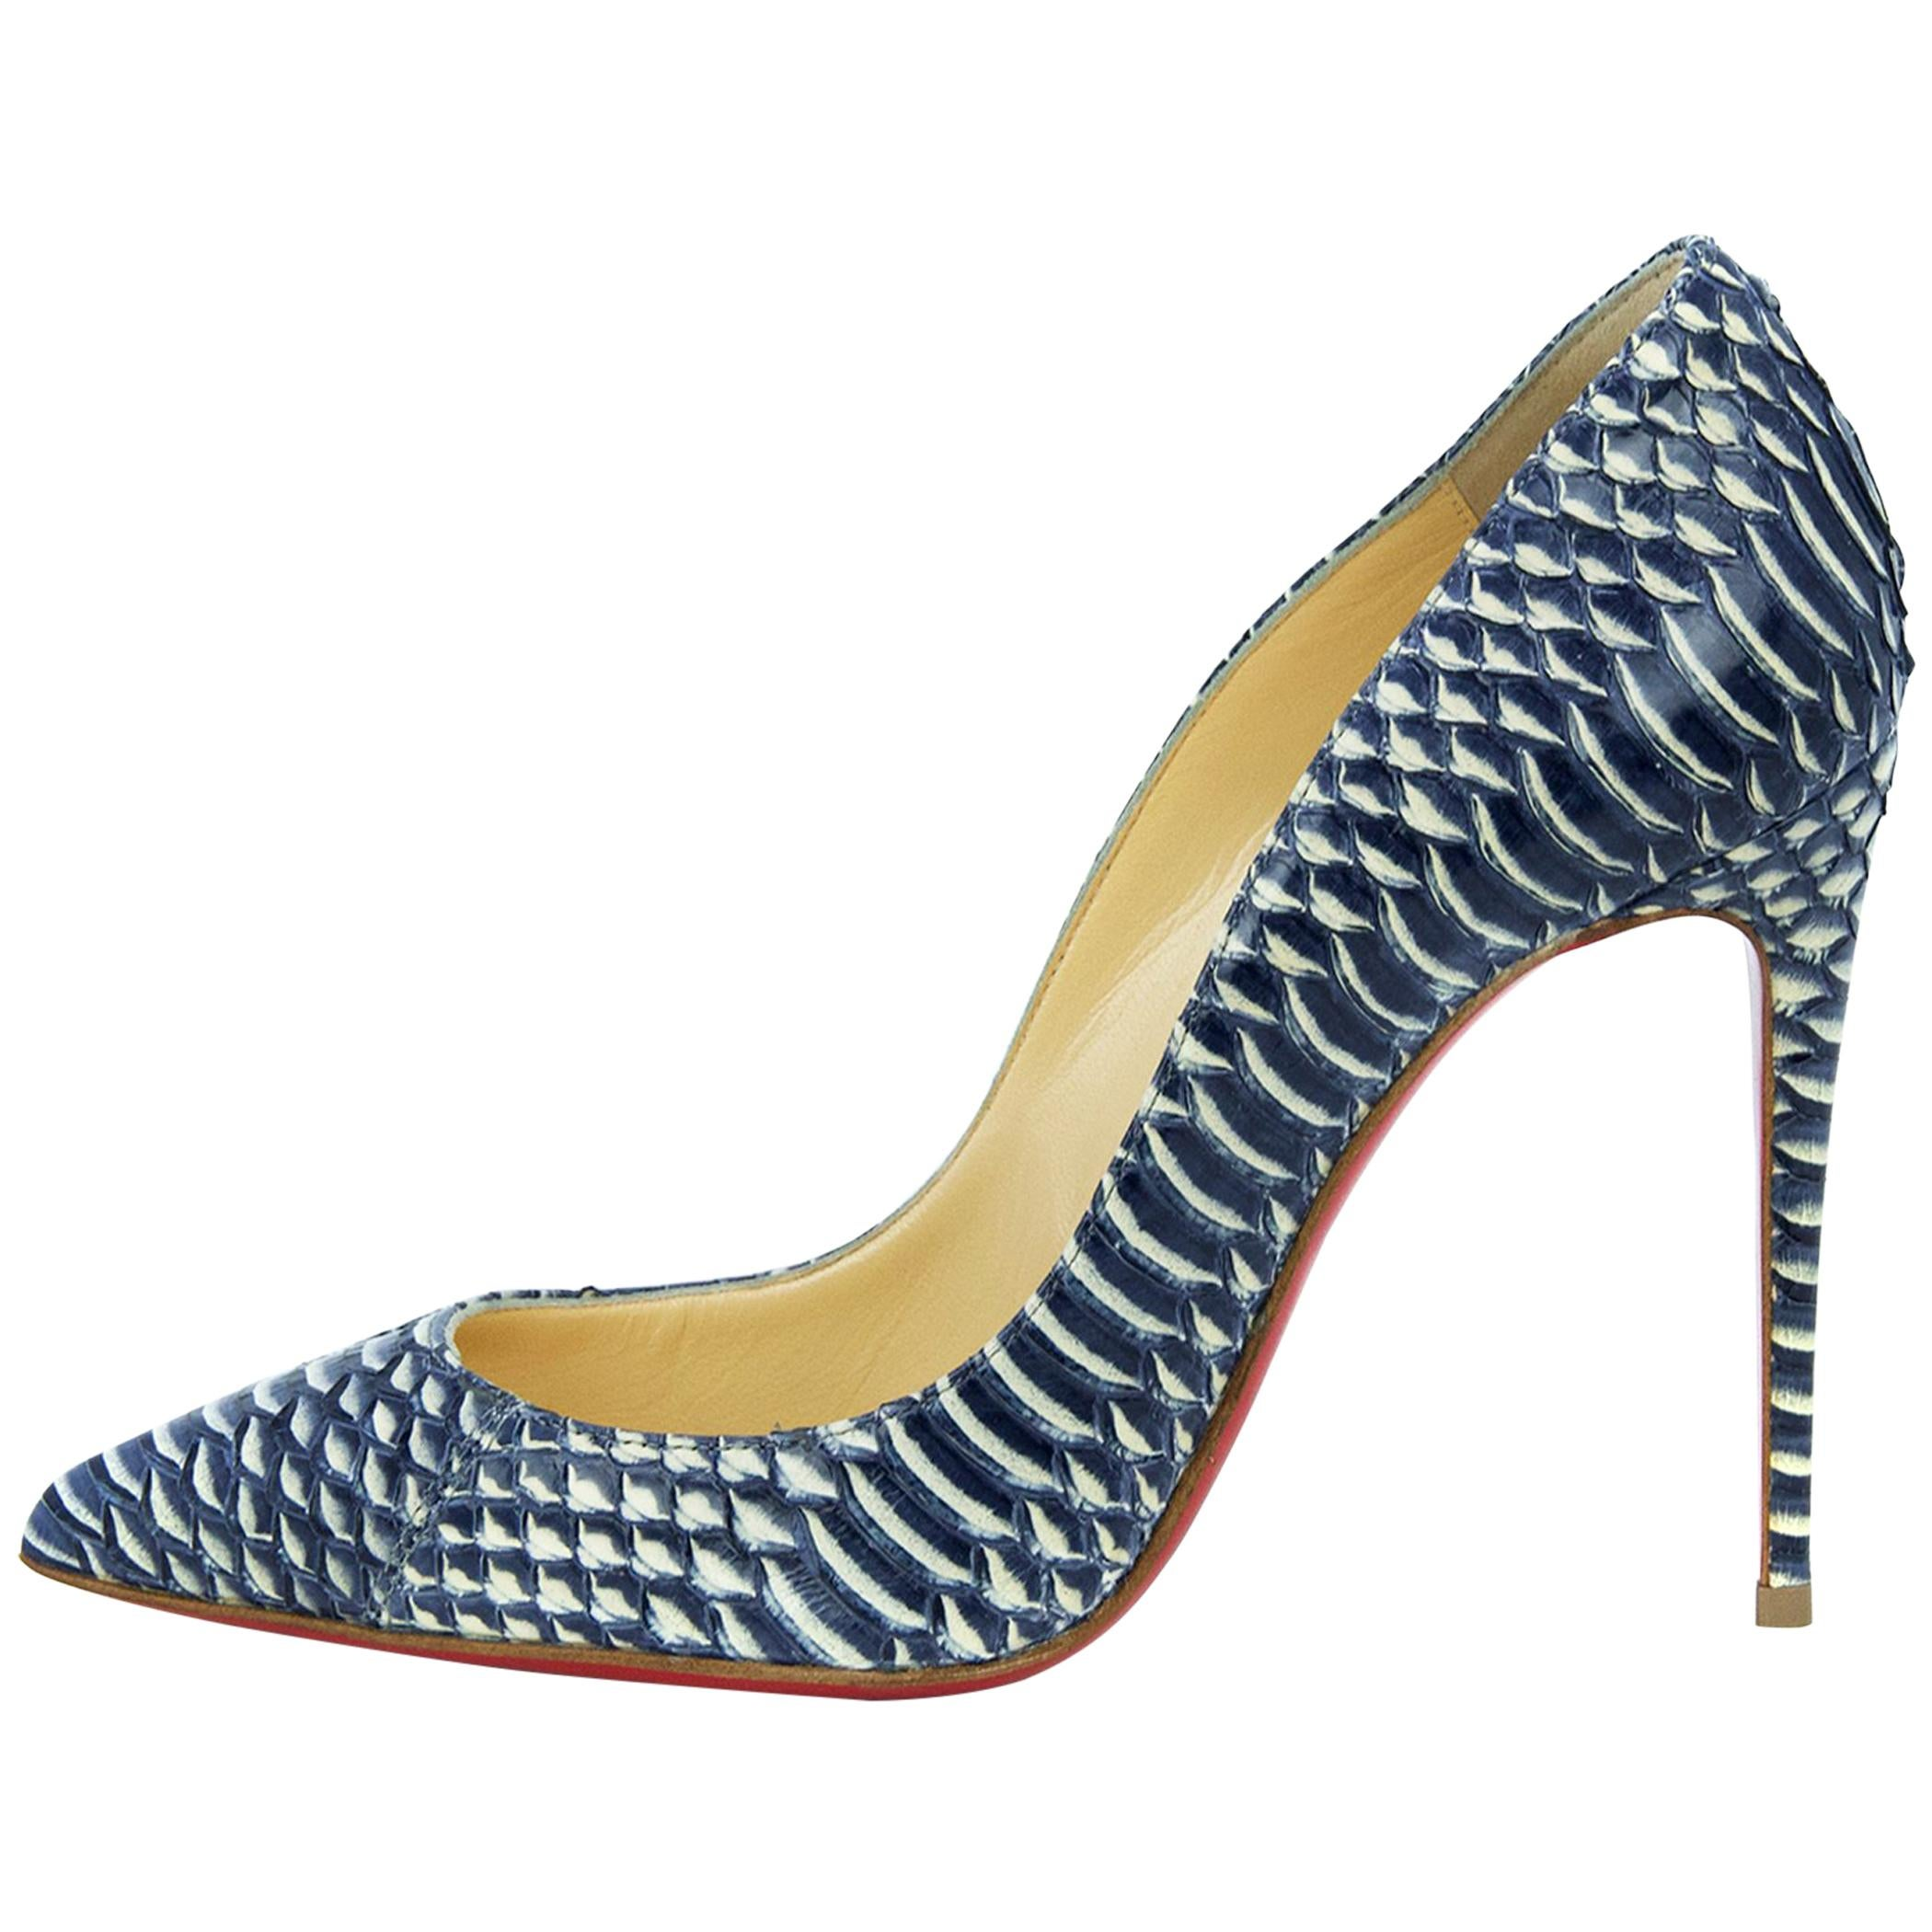 Pigalle Watersnake Size Follies Rocaille 120mm Christian Louboutin dCxoerBW